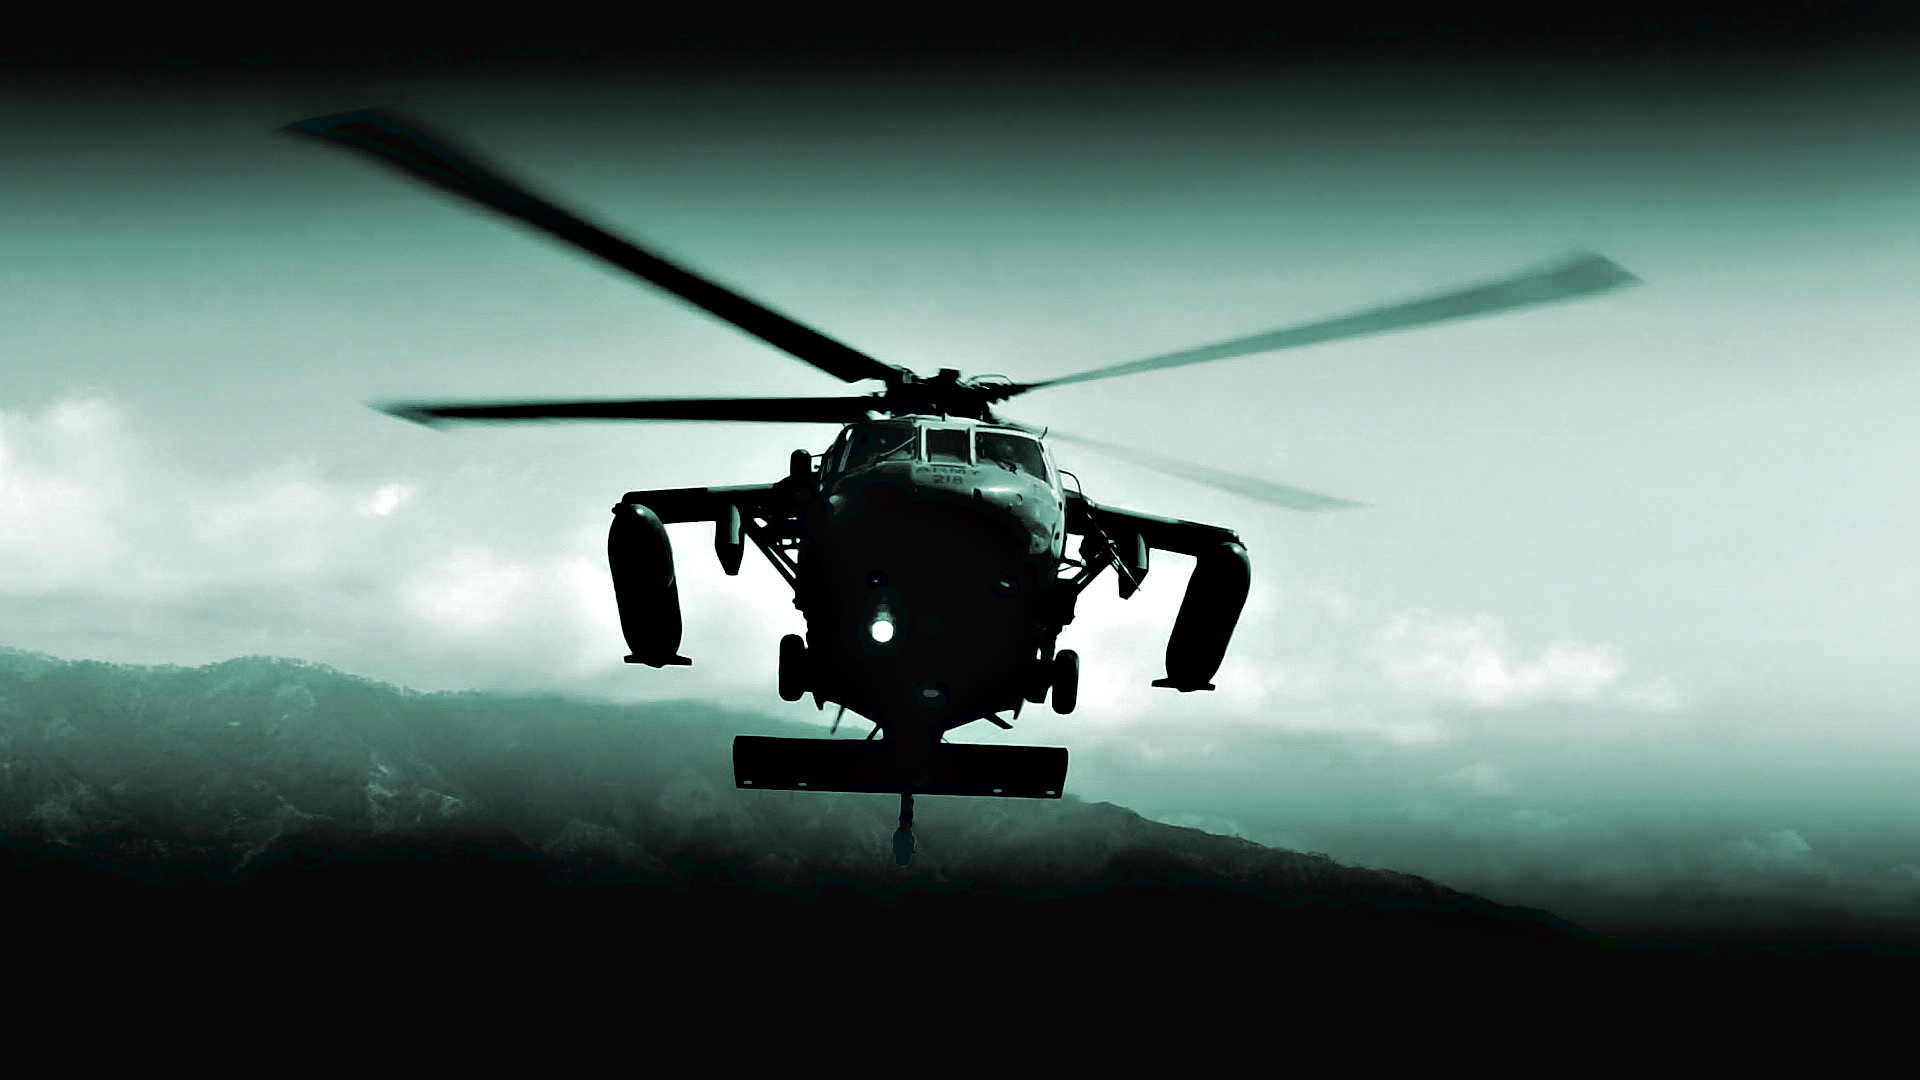 Sikorsky UH 60 Black Hawk Full HD Wallpaper And Background Image